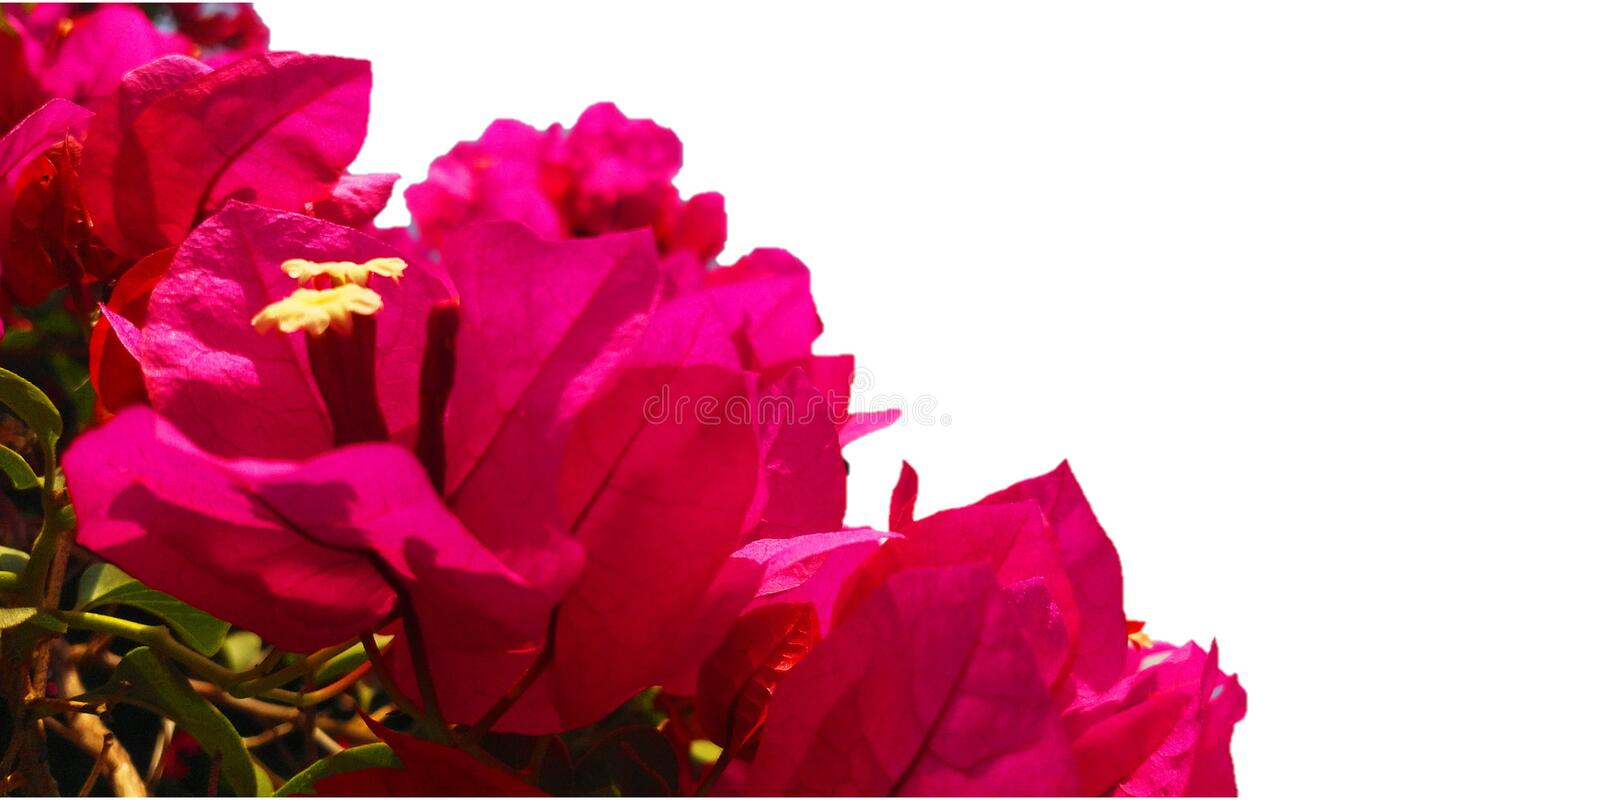 Bright Pink Bougainvillea Flowers on a white background. Bunch of Bright Pink Bougainvillea Flowers on a white background royalty free stock photography